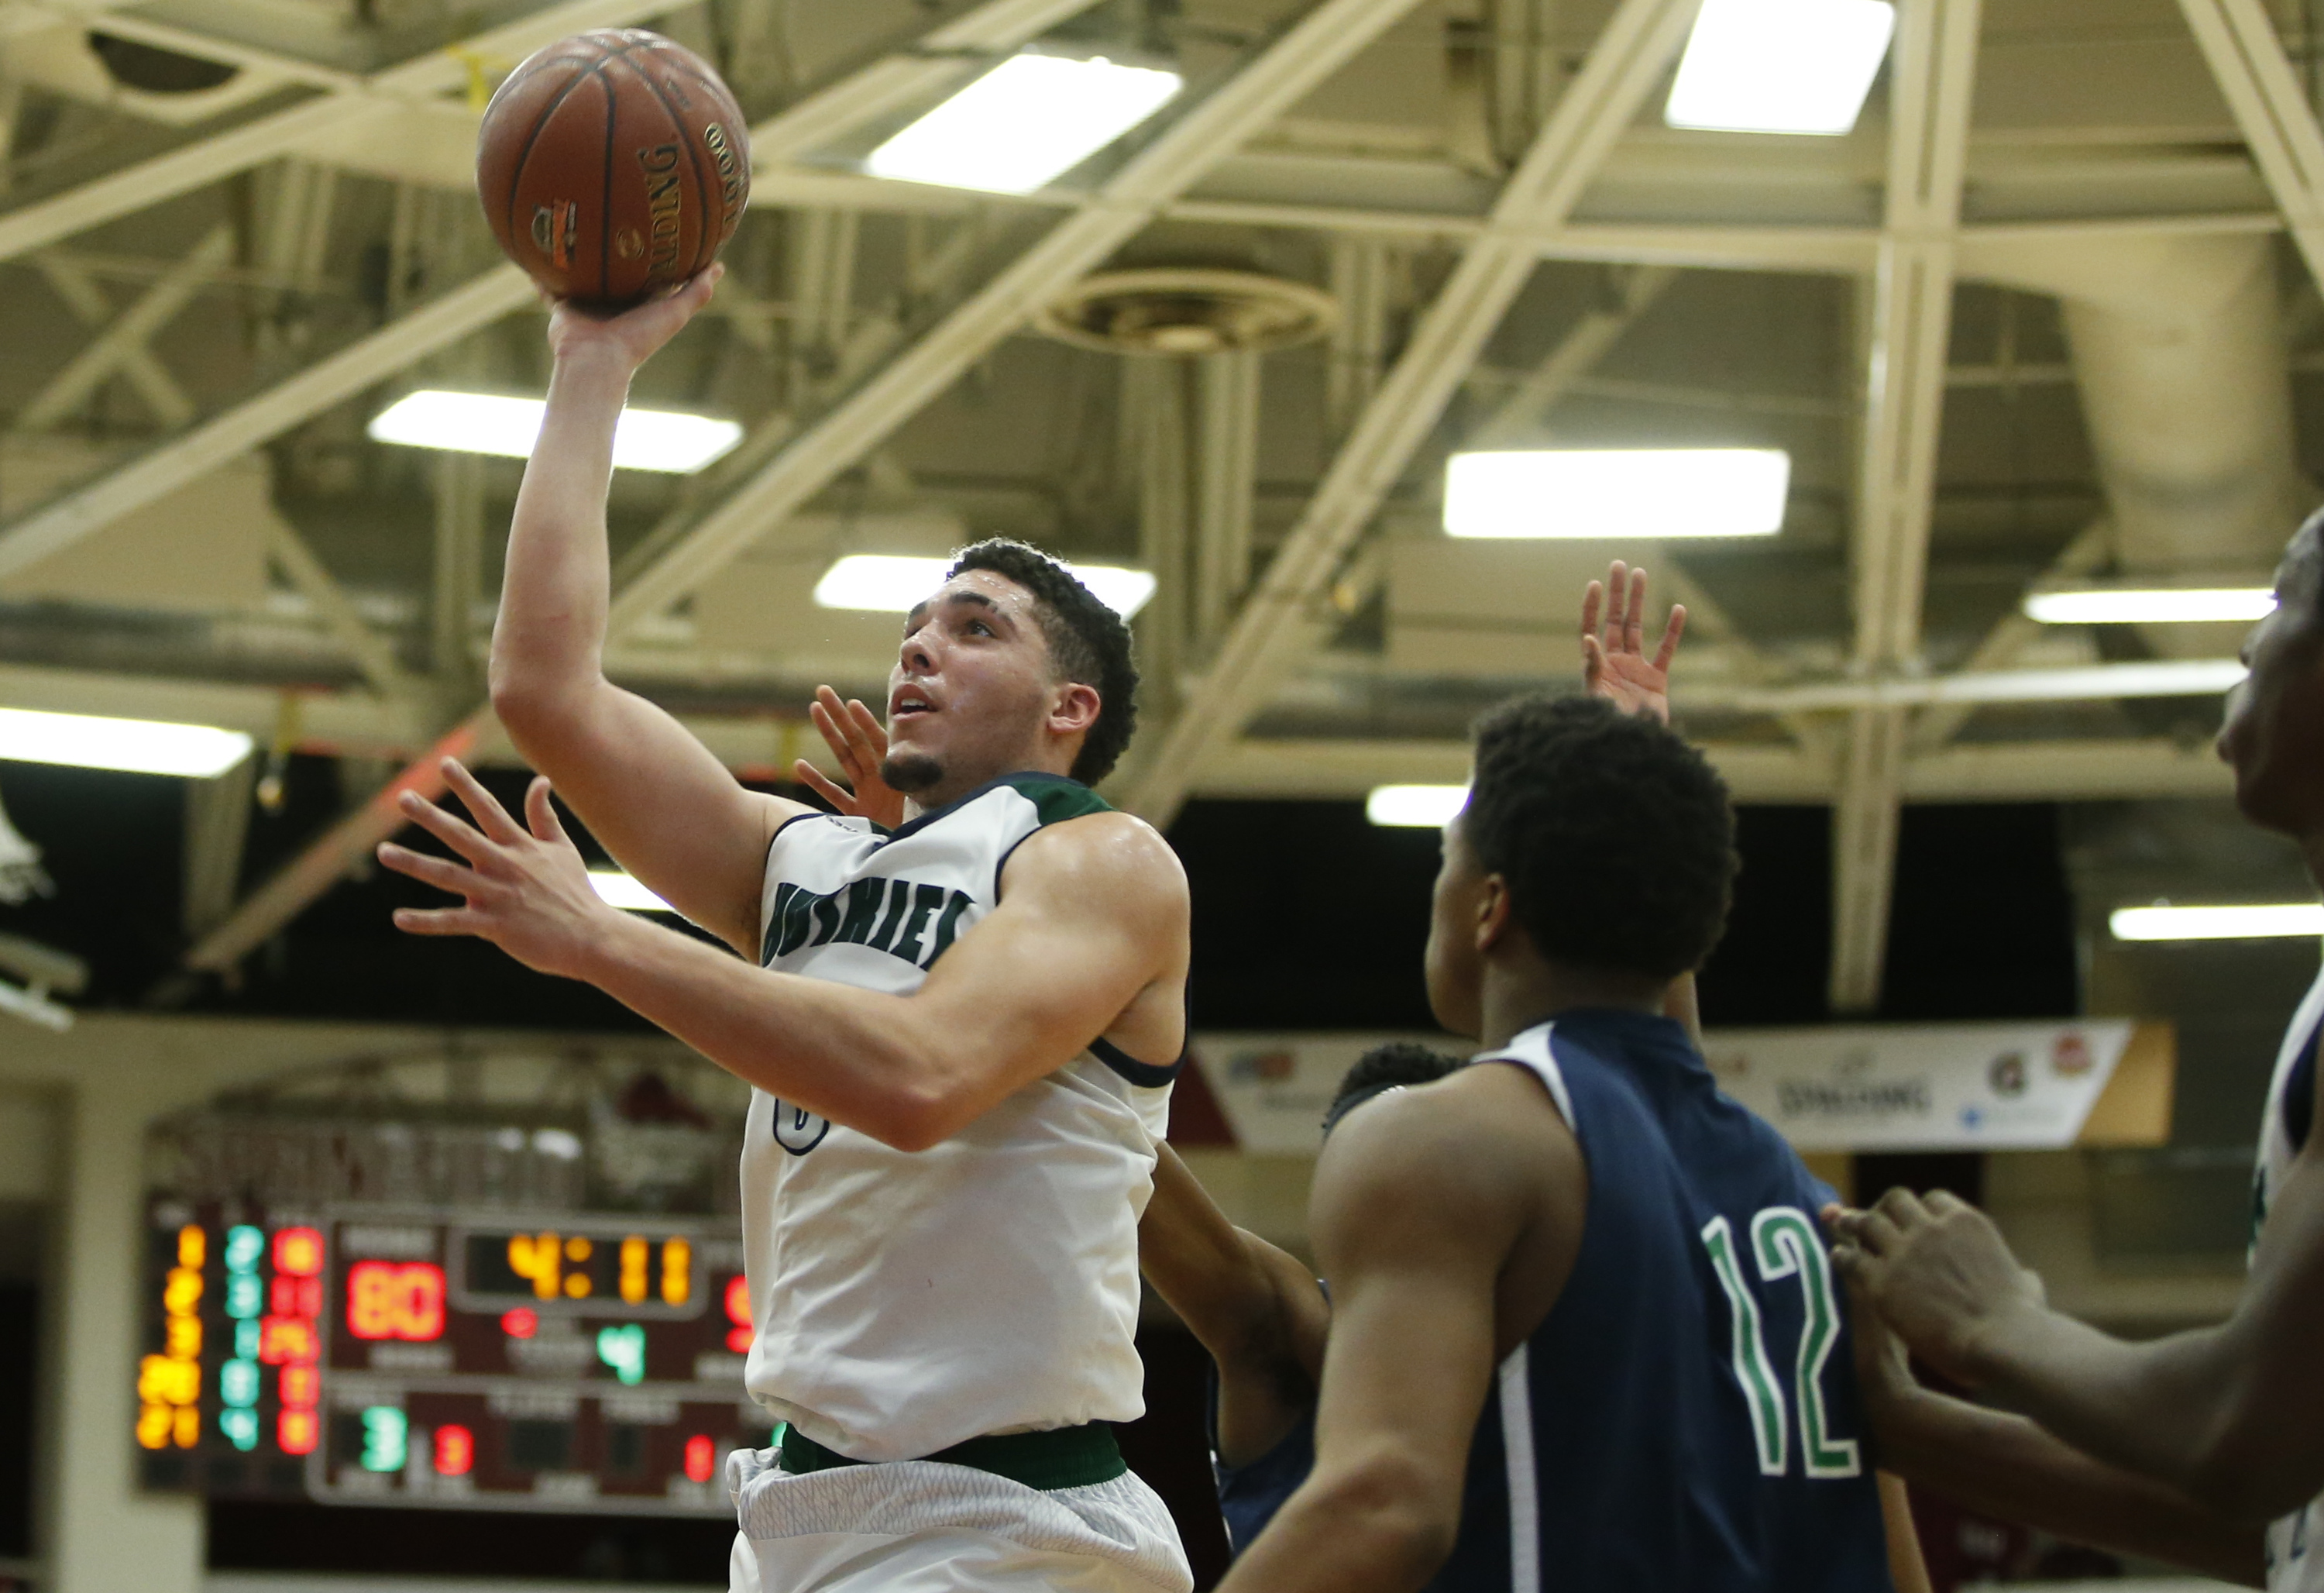 Jan 18, 2016 -- Springfield, MA, U.S.A -- Chino Hills LiAngelo Ball (3) shoots against High Point Christian in the second half of the Spalding Hoophall Classic at Blake Arena in Springfield, Mass. Chino Hills defeated High Point Christian 100-75. -- Photo by David Butler II-USA Today Sports Images ORG XMIT: US 134344 Spalding Hoophal 1/17/2016 [Via MerlinFTP Drop]